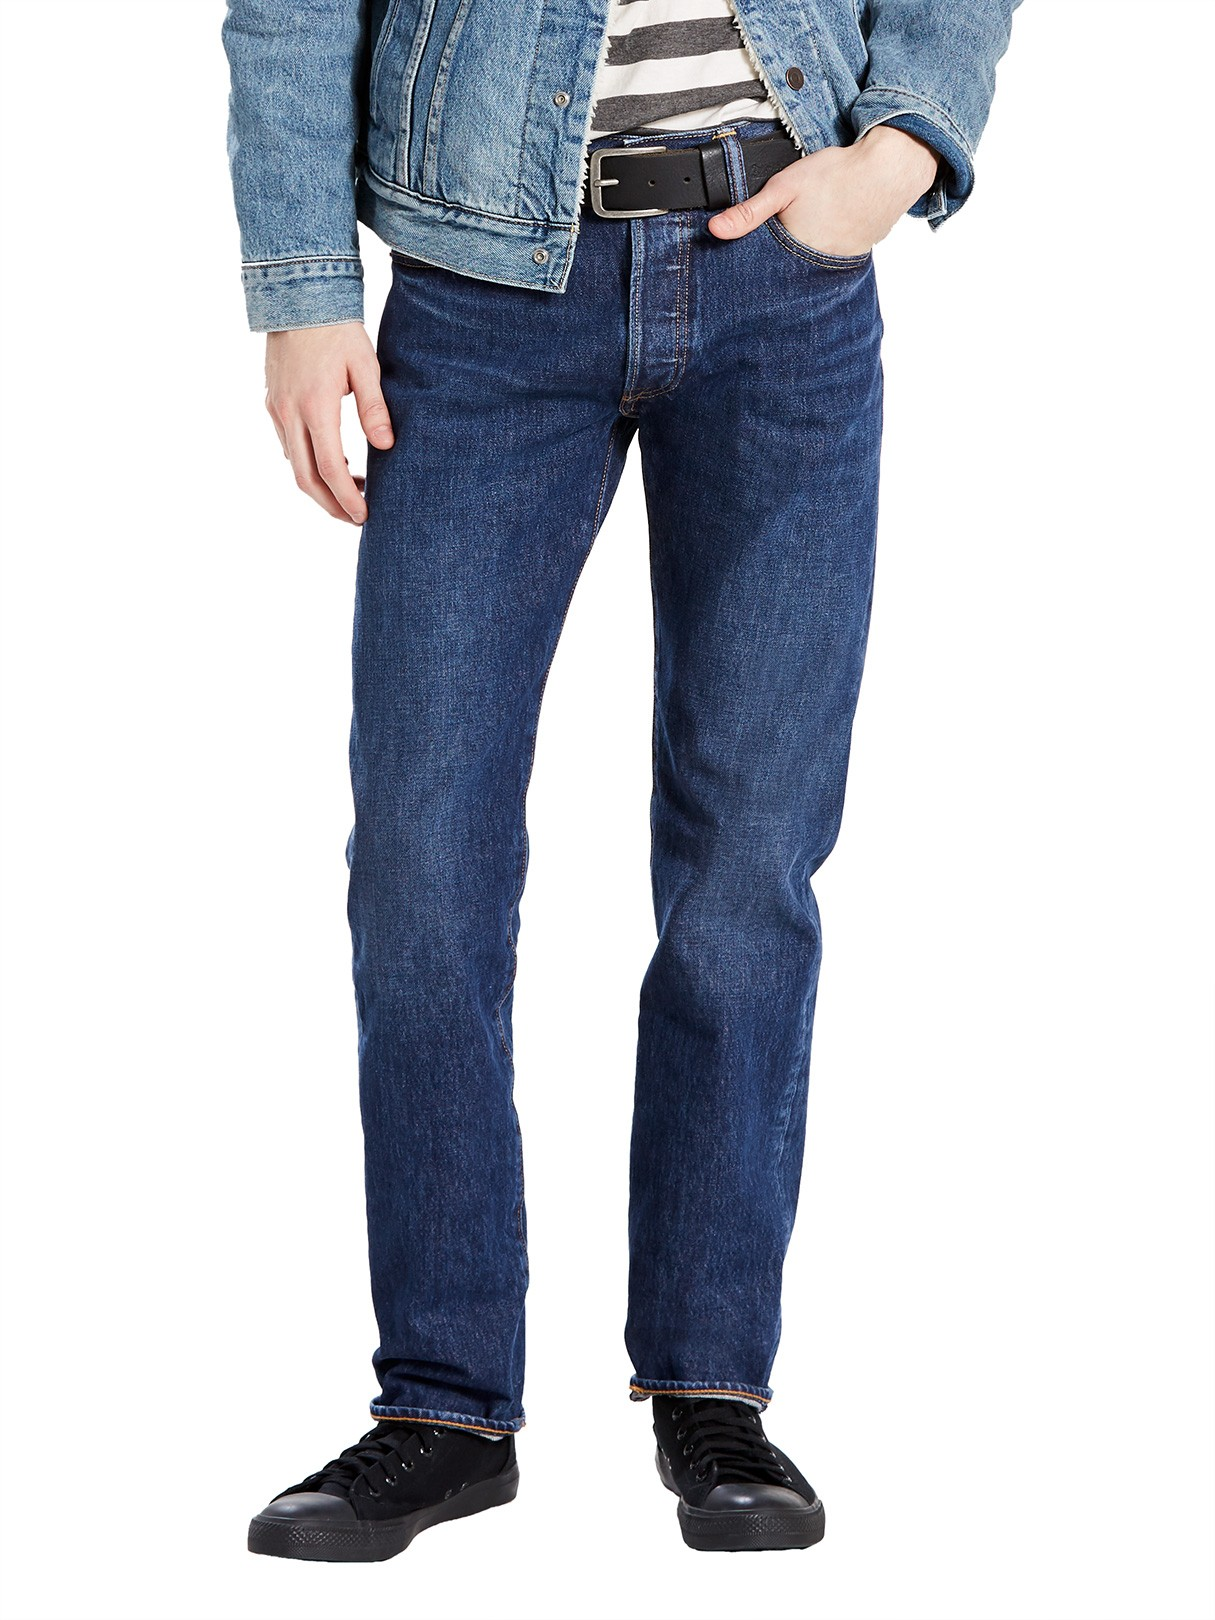 Stand-out.net Levi's Subway Station 501 Original Fit Jeans